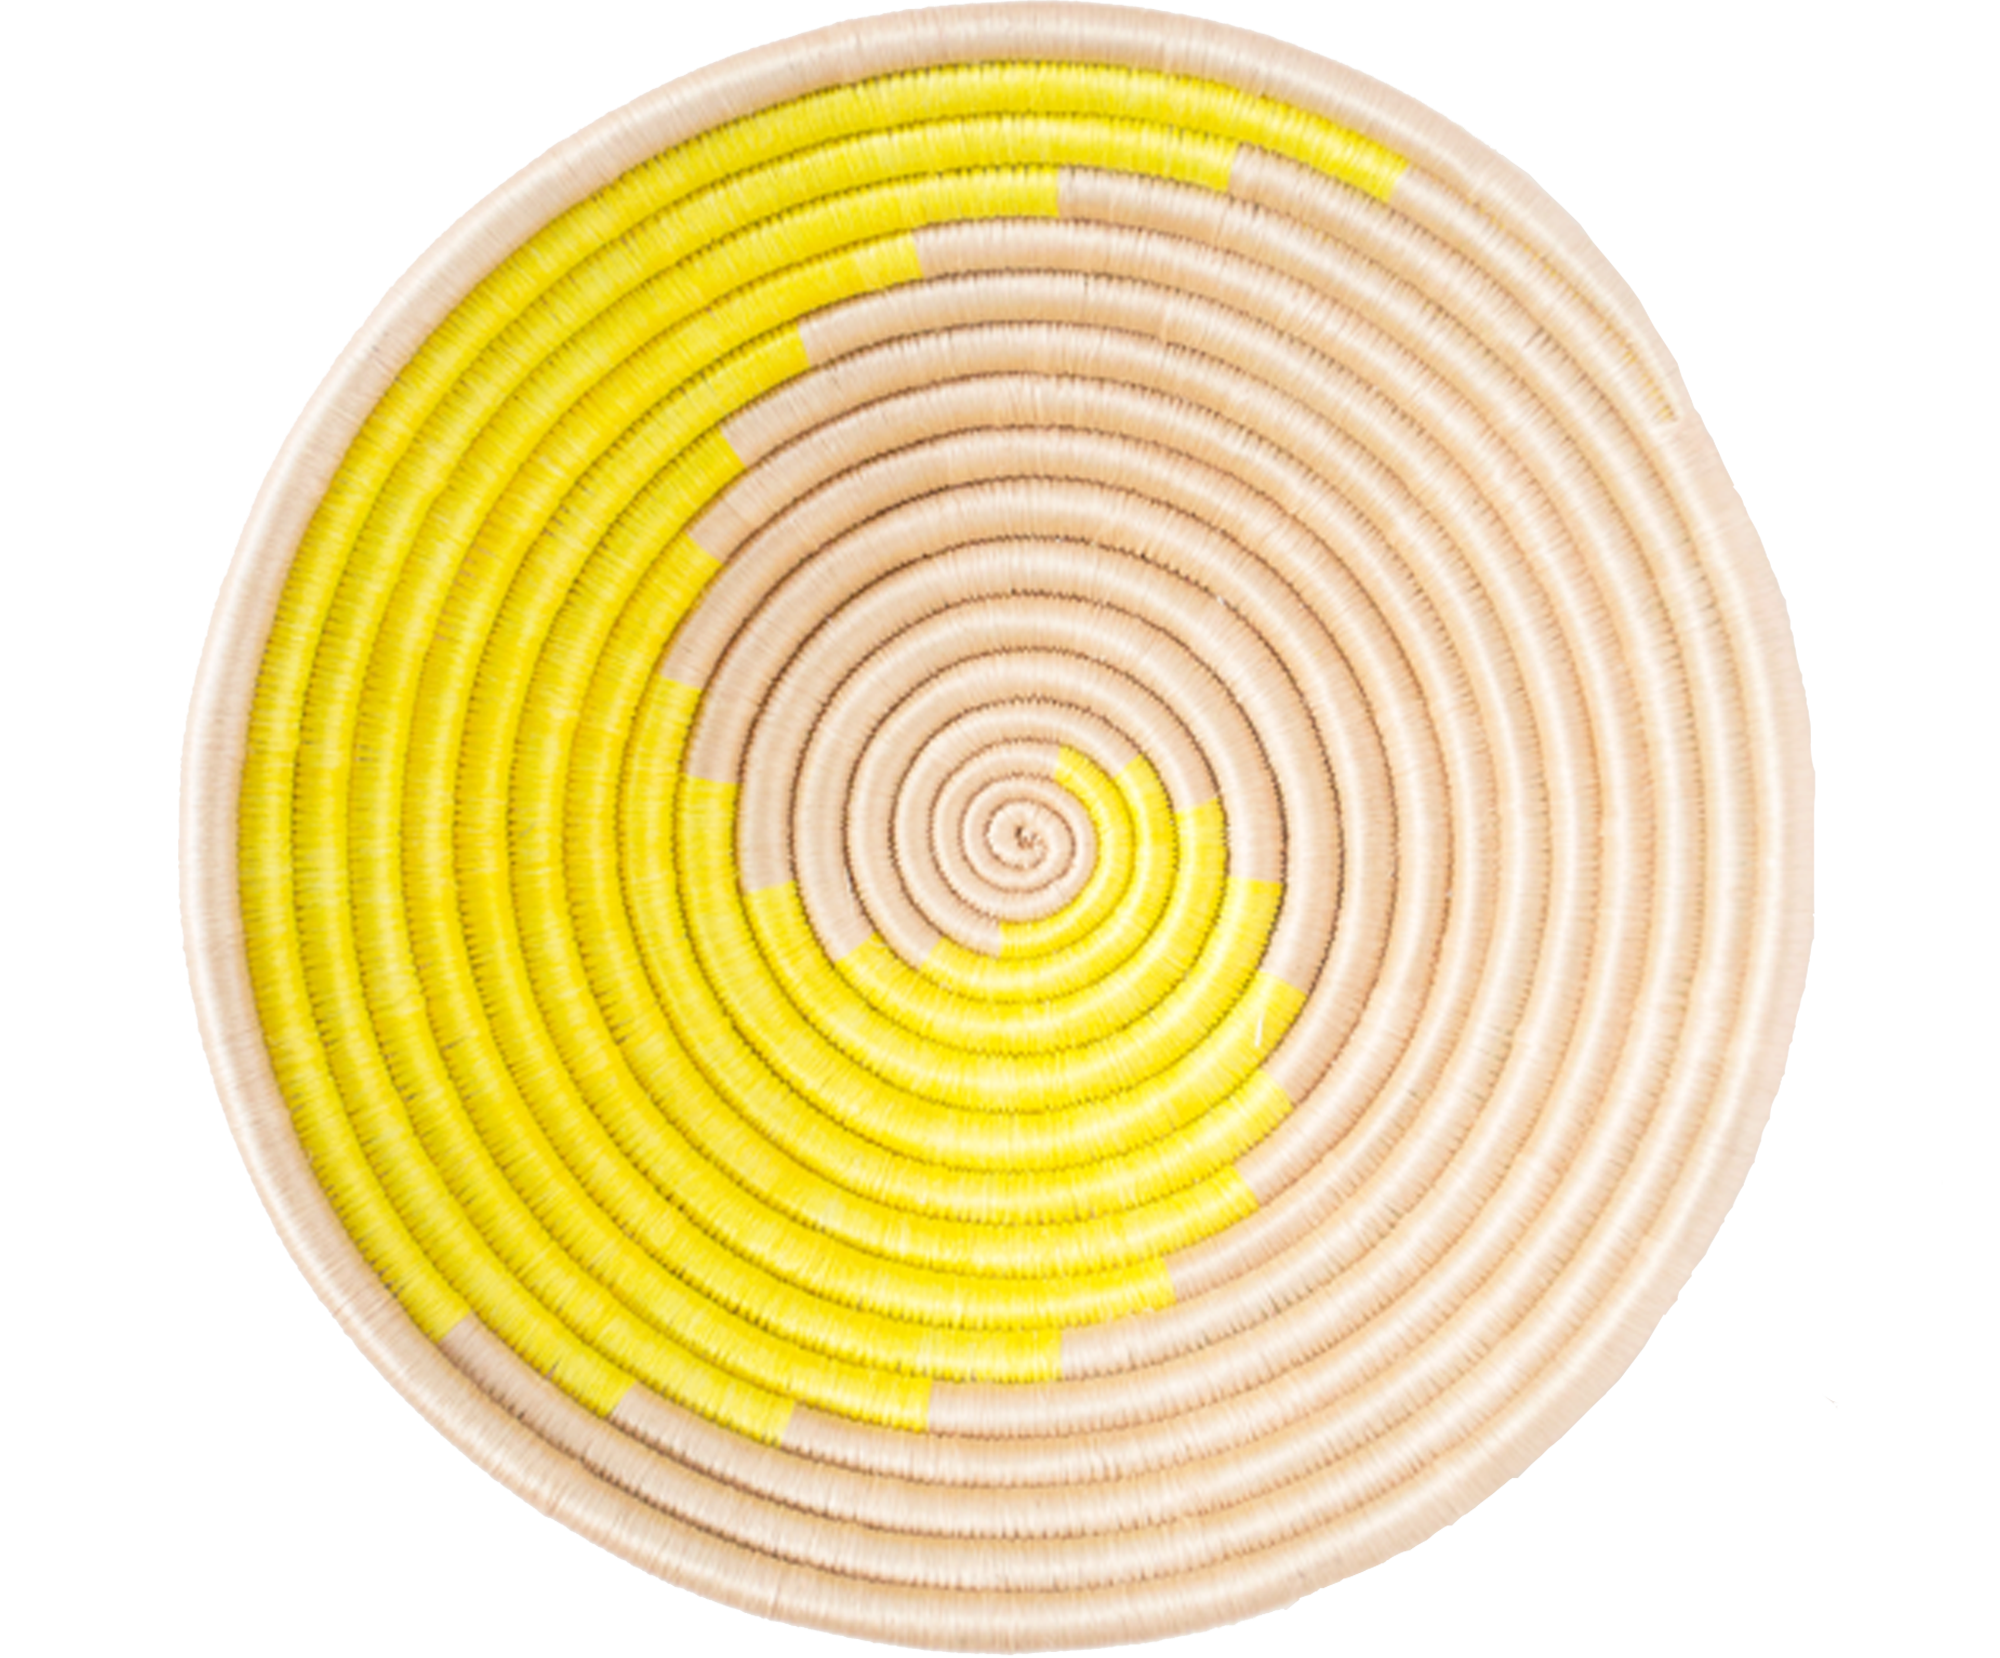 Home Decor Yellow Swirl Woven Bowl